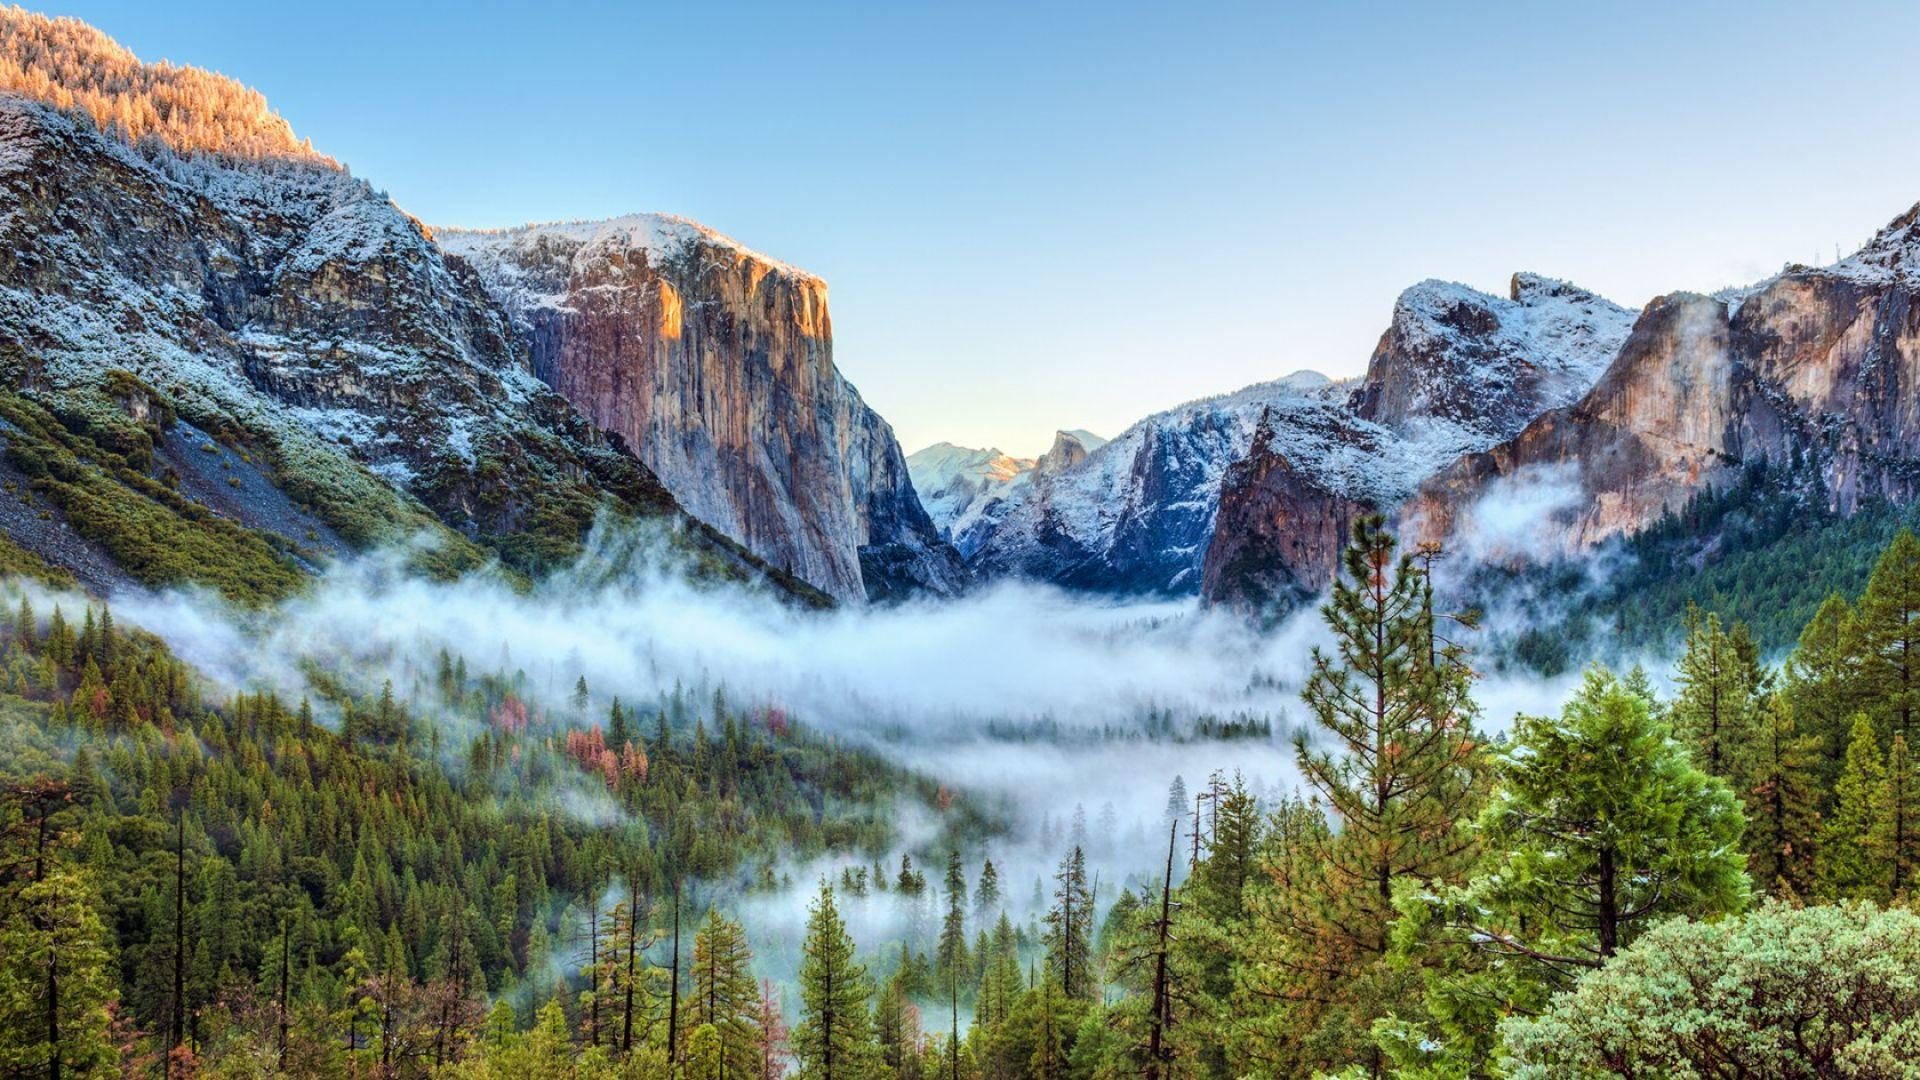 Full HD 1080p Yosemite national park Wallpapers HD, Desktop